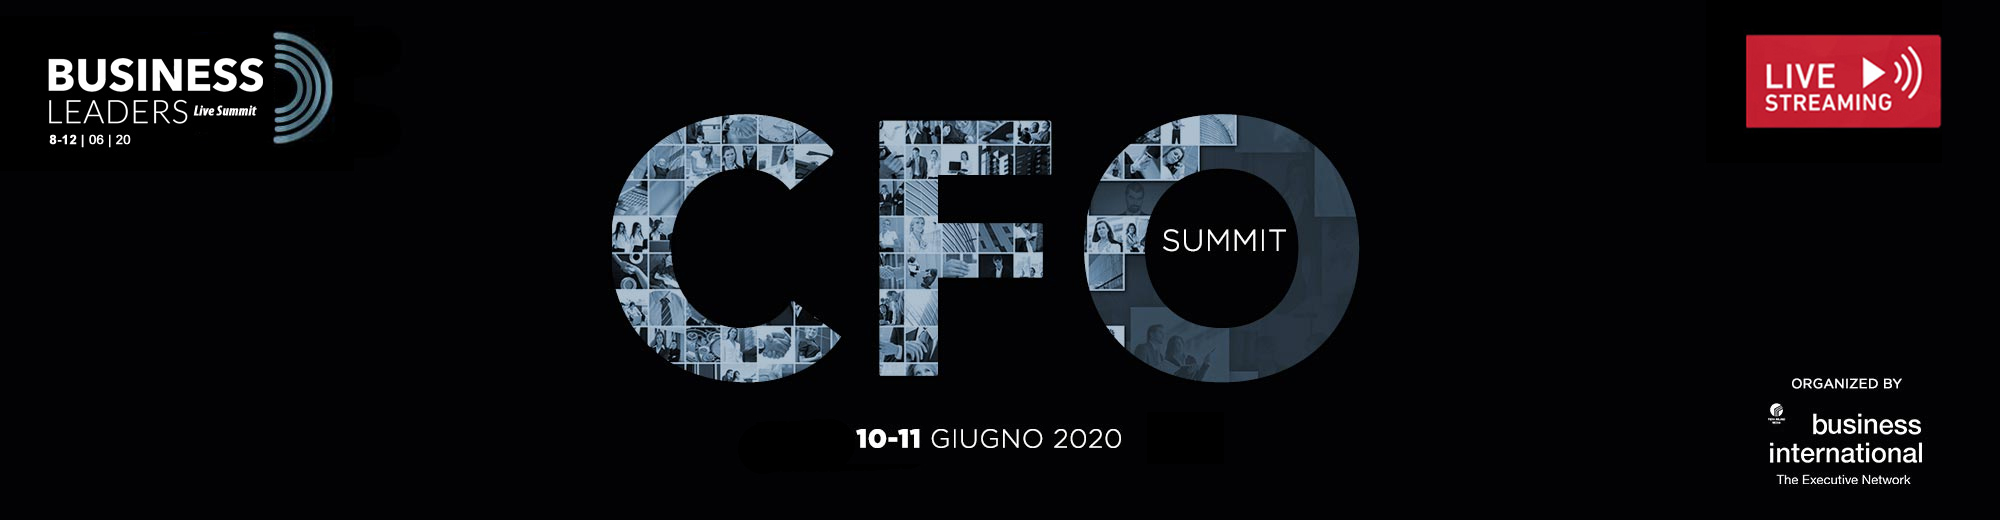 CFO Summit 2020